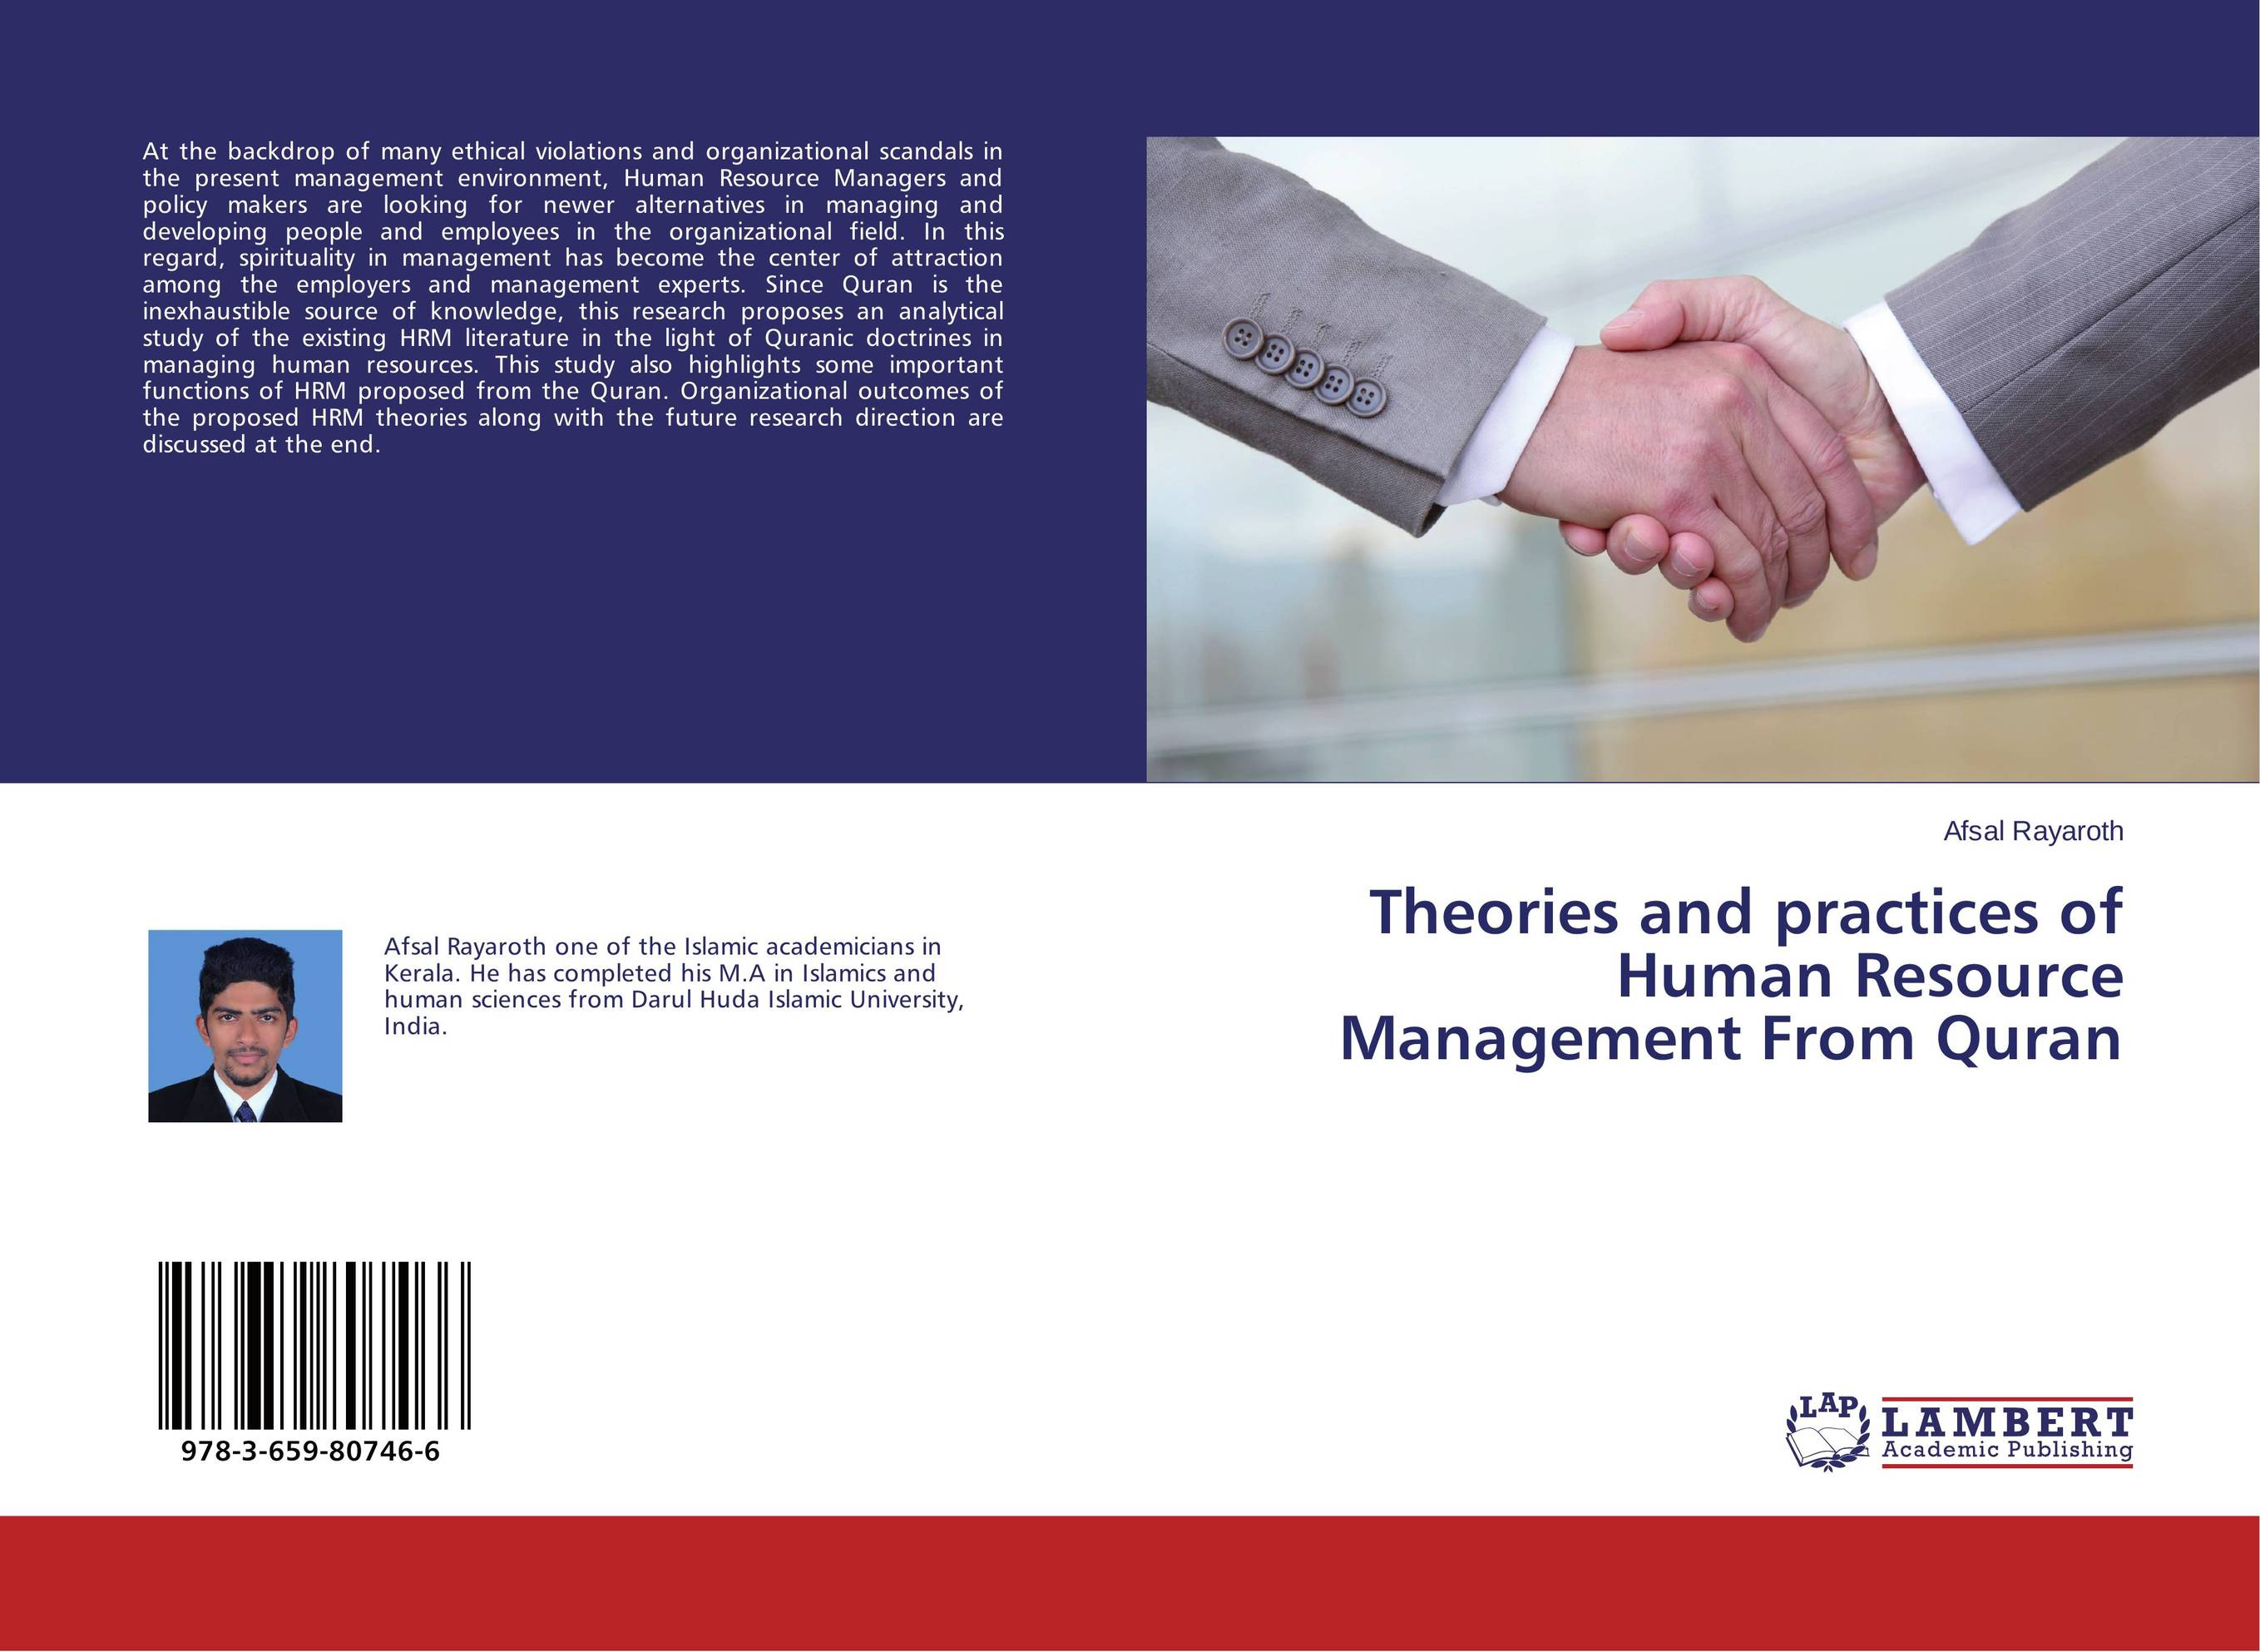 hrm best practices and transfers to